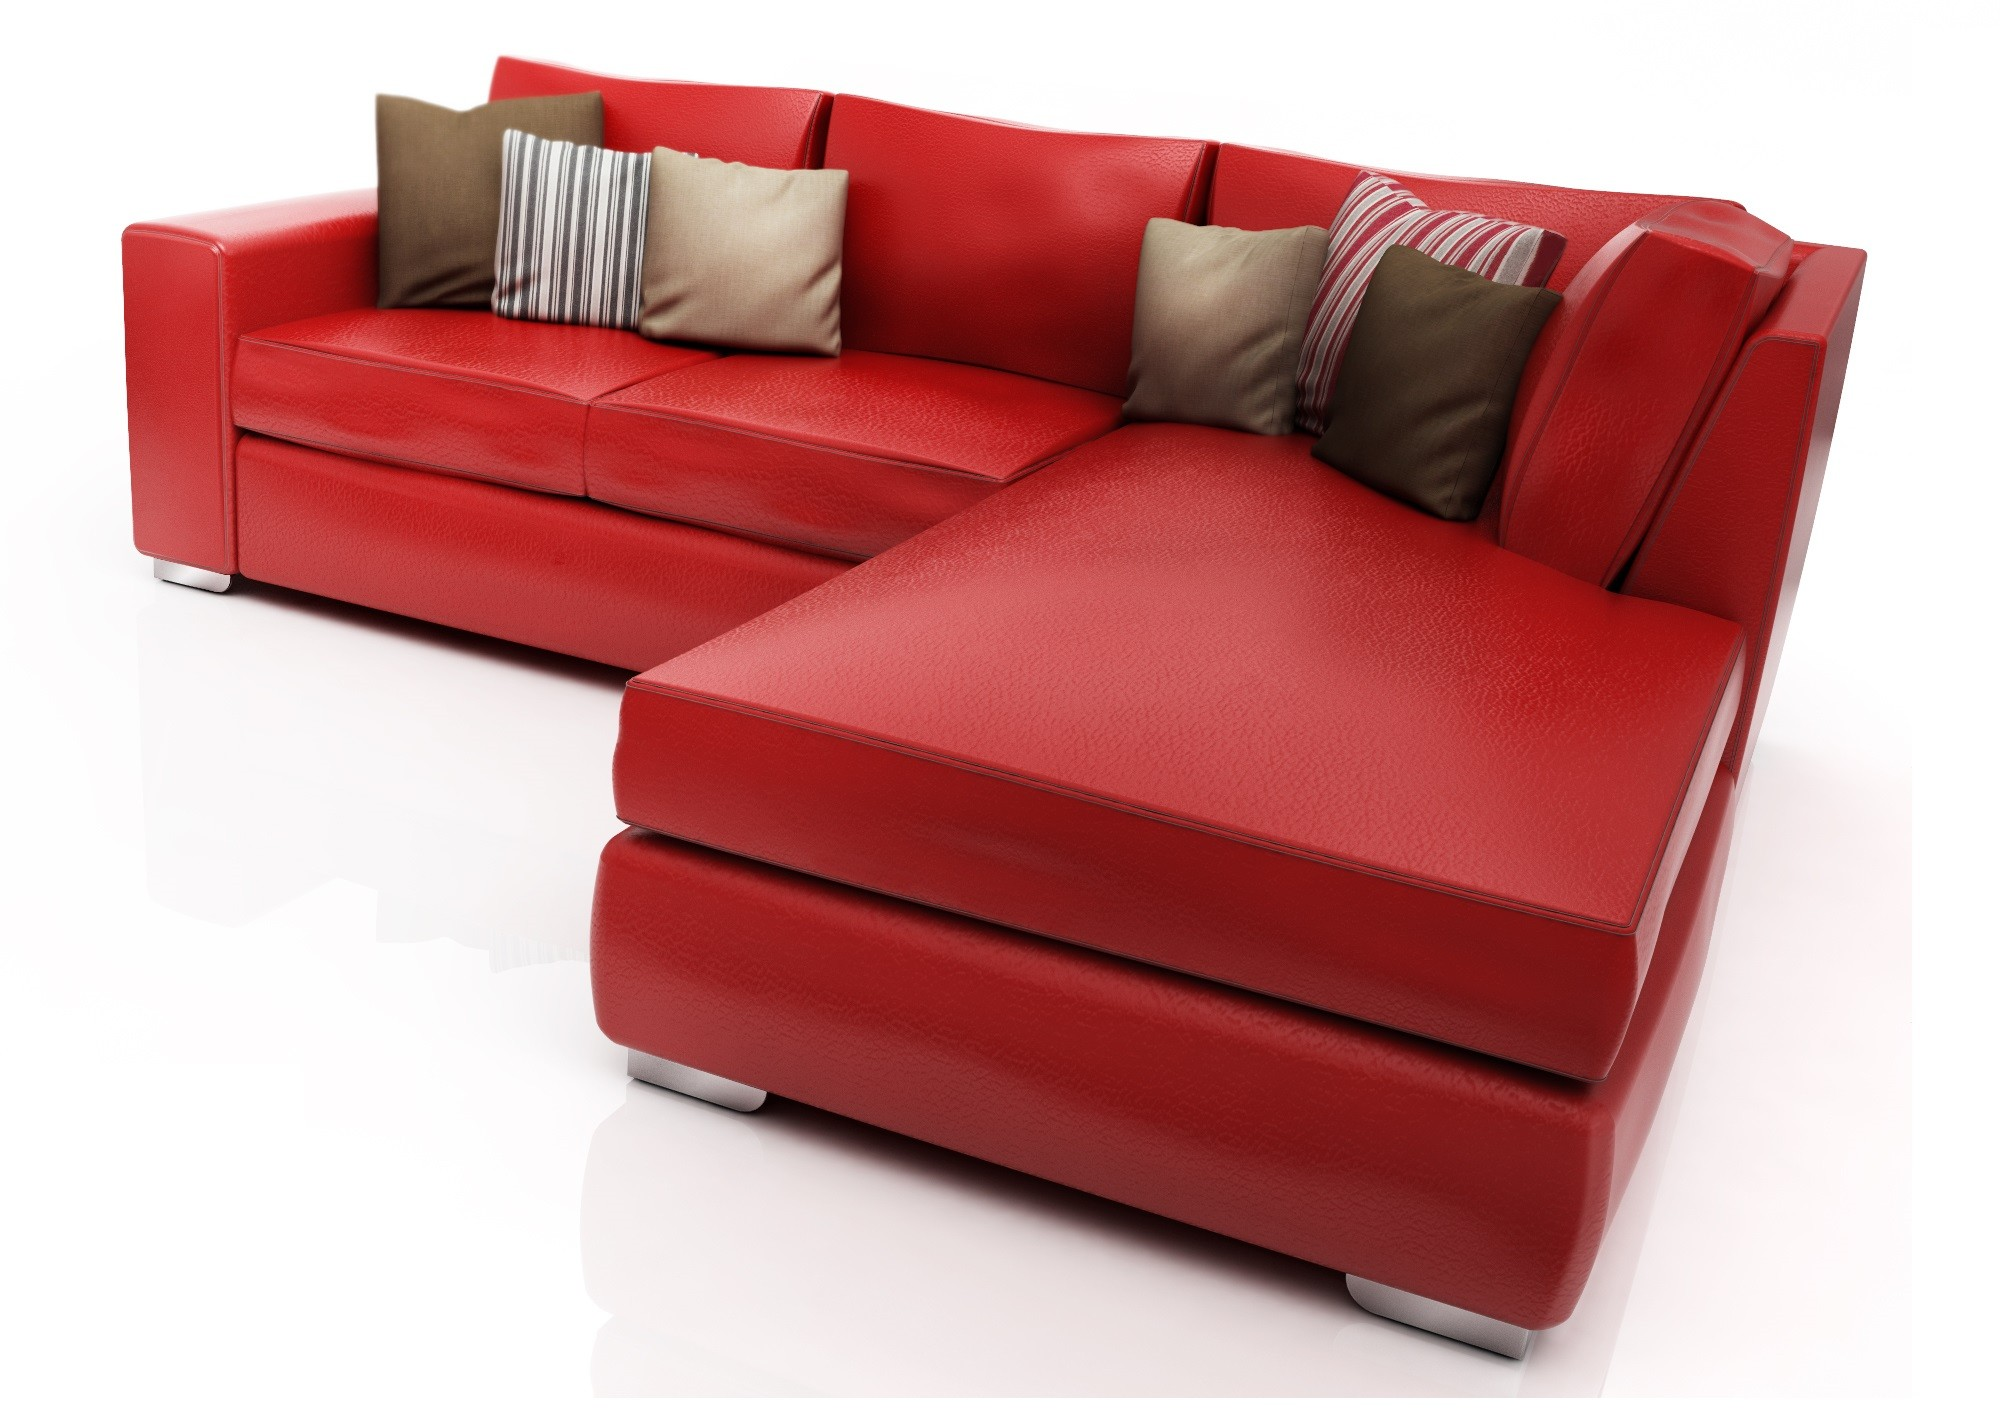 Sofa Luxury Esquinero American Wood [Rojo]